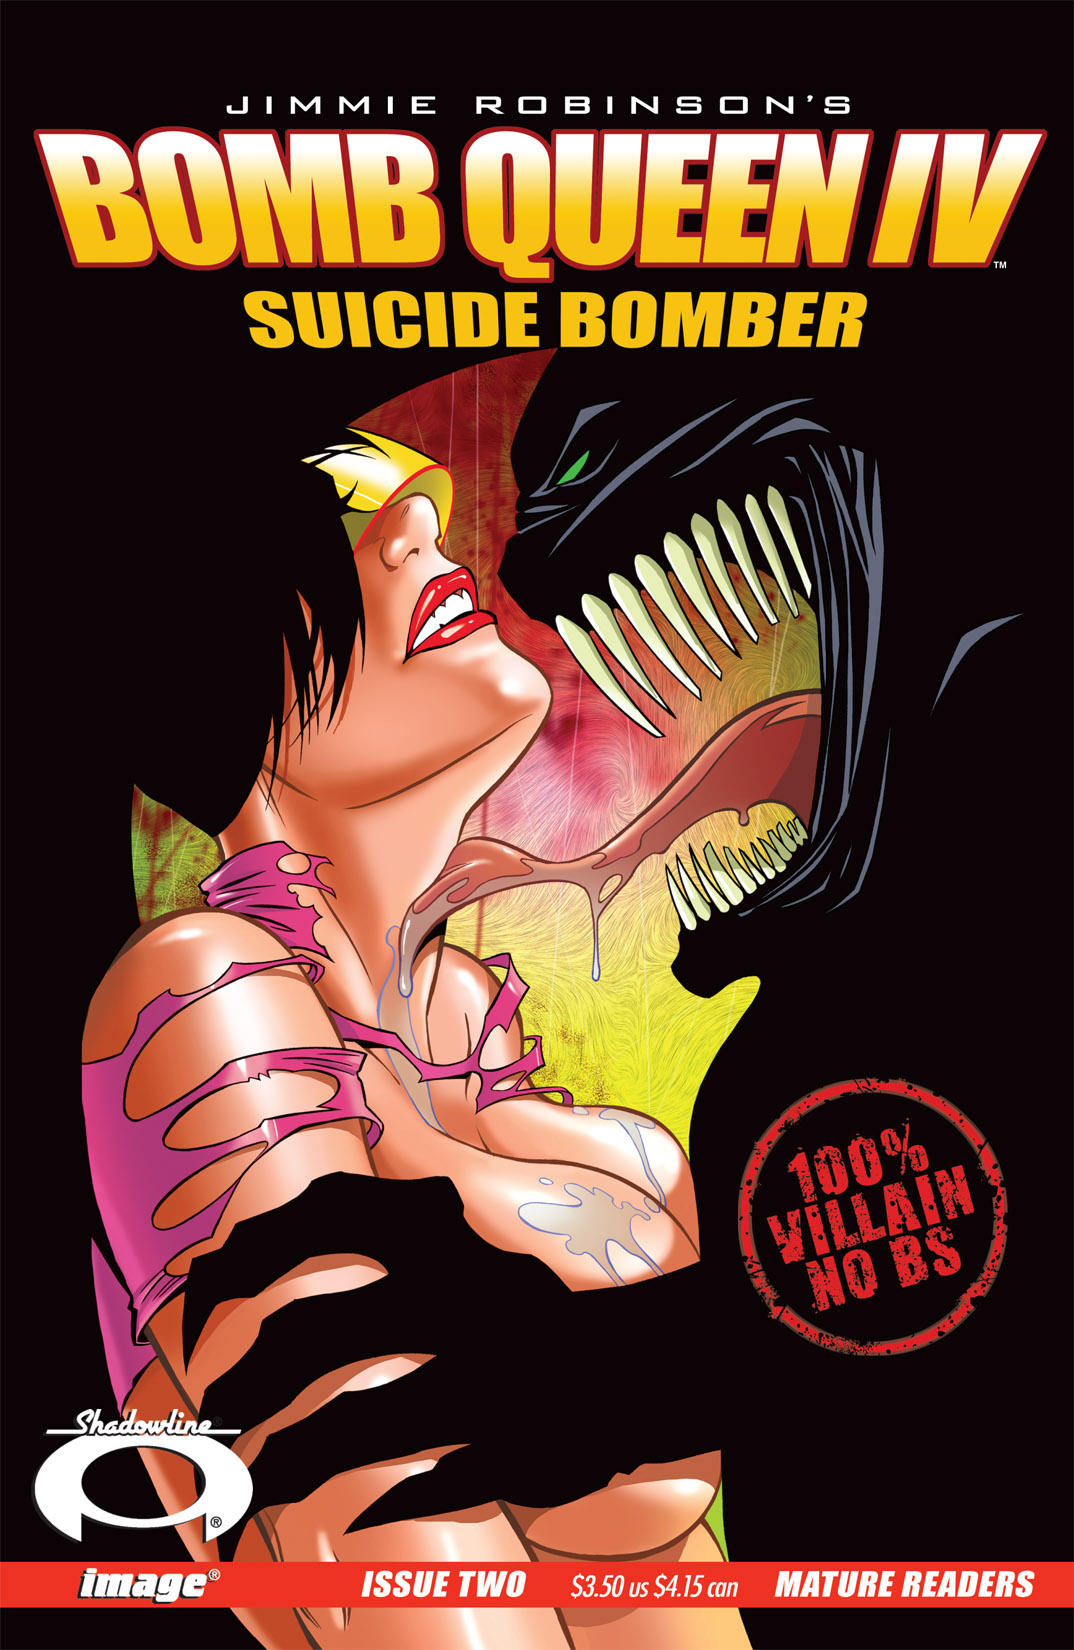 Bomb Queen IV Suicide Bomber Issue 2